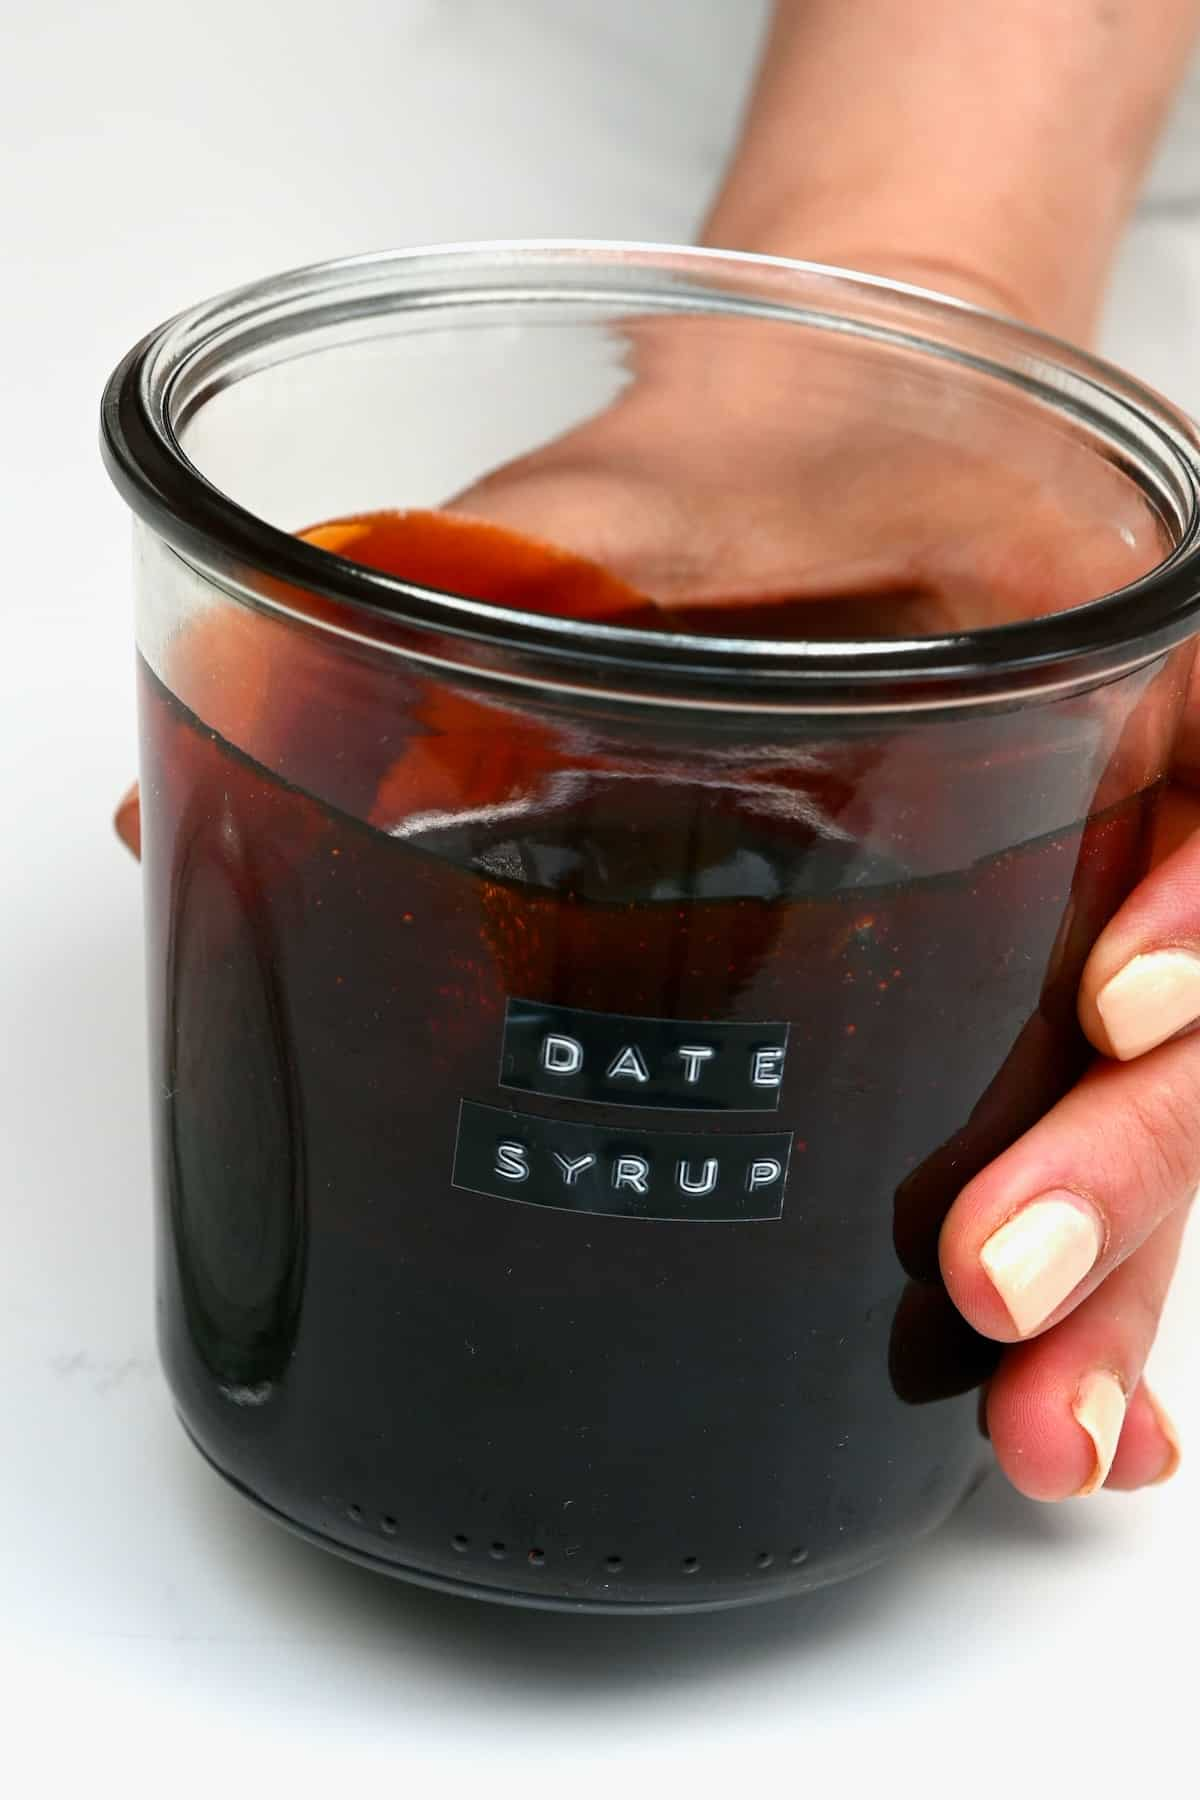 Date syrup in a jar